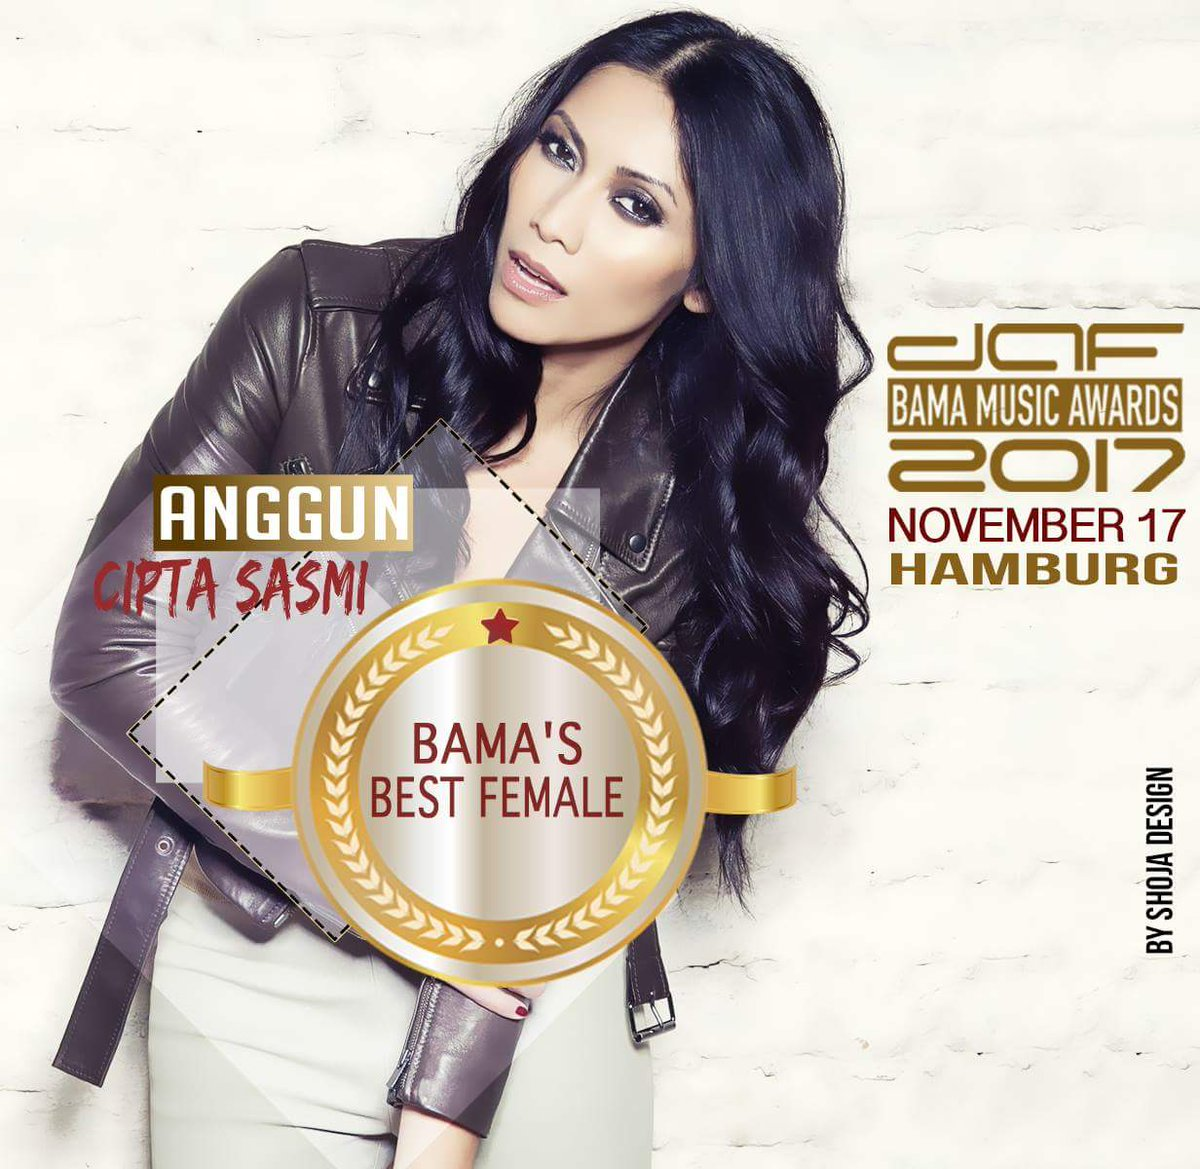 so proud of you mba @Anggun_Cipta congrats for @dafentcom BAMA&#39;s best female awards winner.. #BAMA2017 #Germany<br>http://pic.twitter.com/RYVzTy0mzF